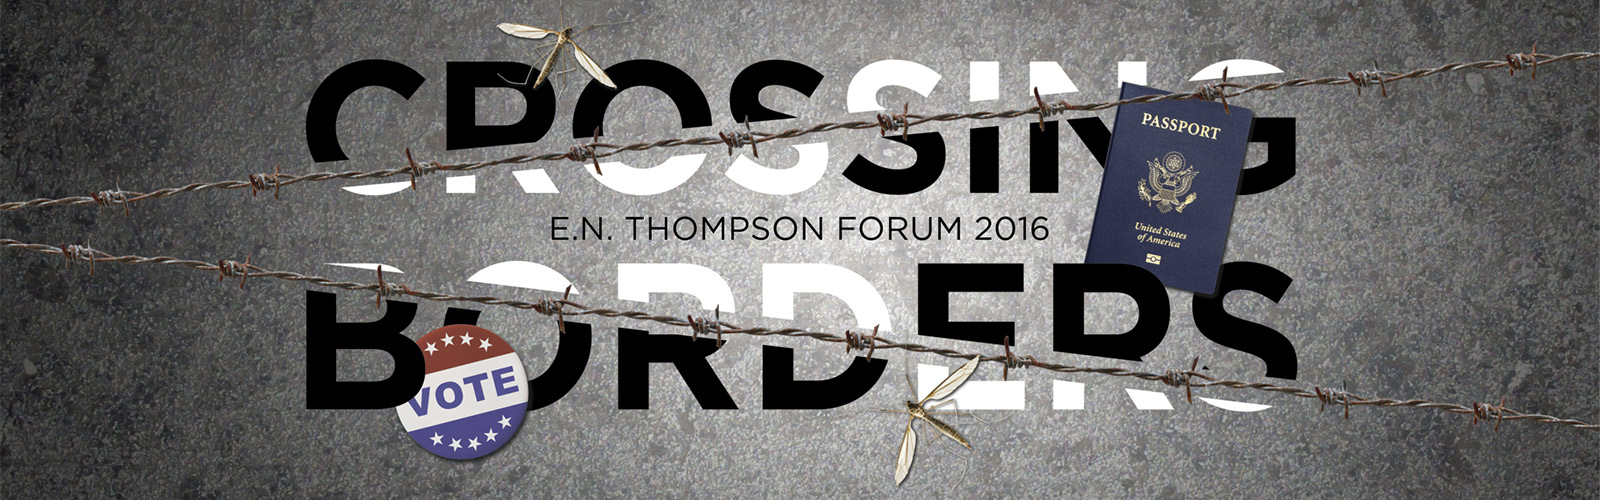 Crossing Borders - E.N. Thompson 2016-17 Season header image